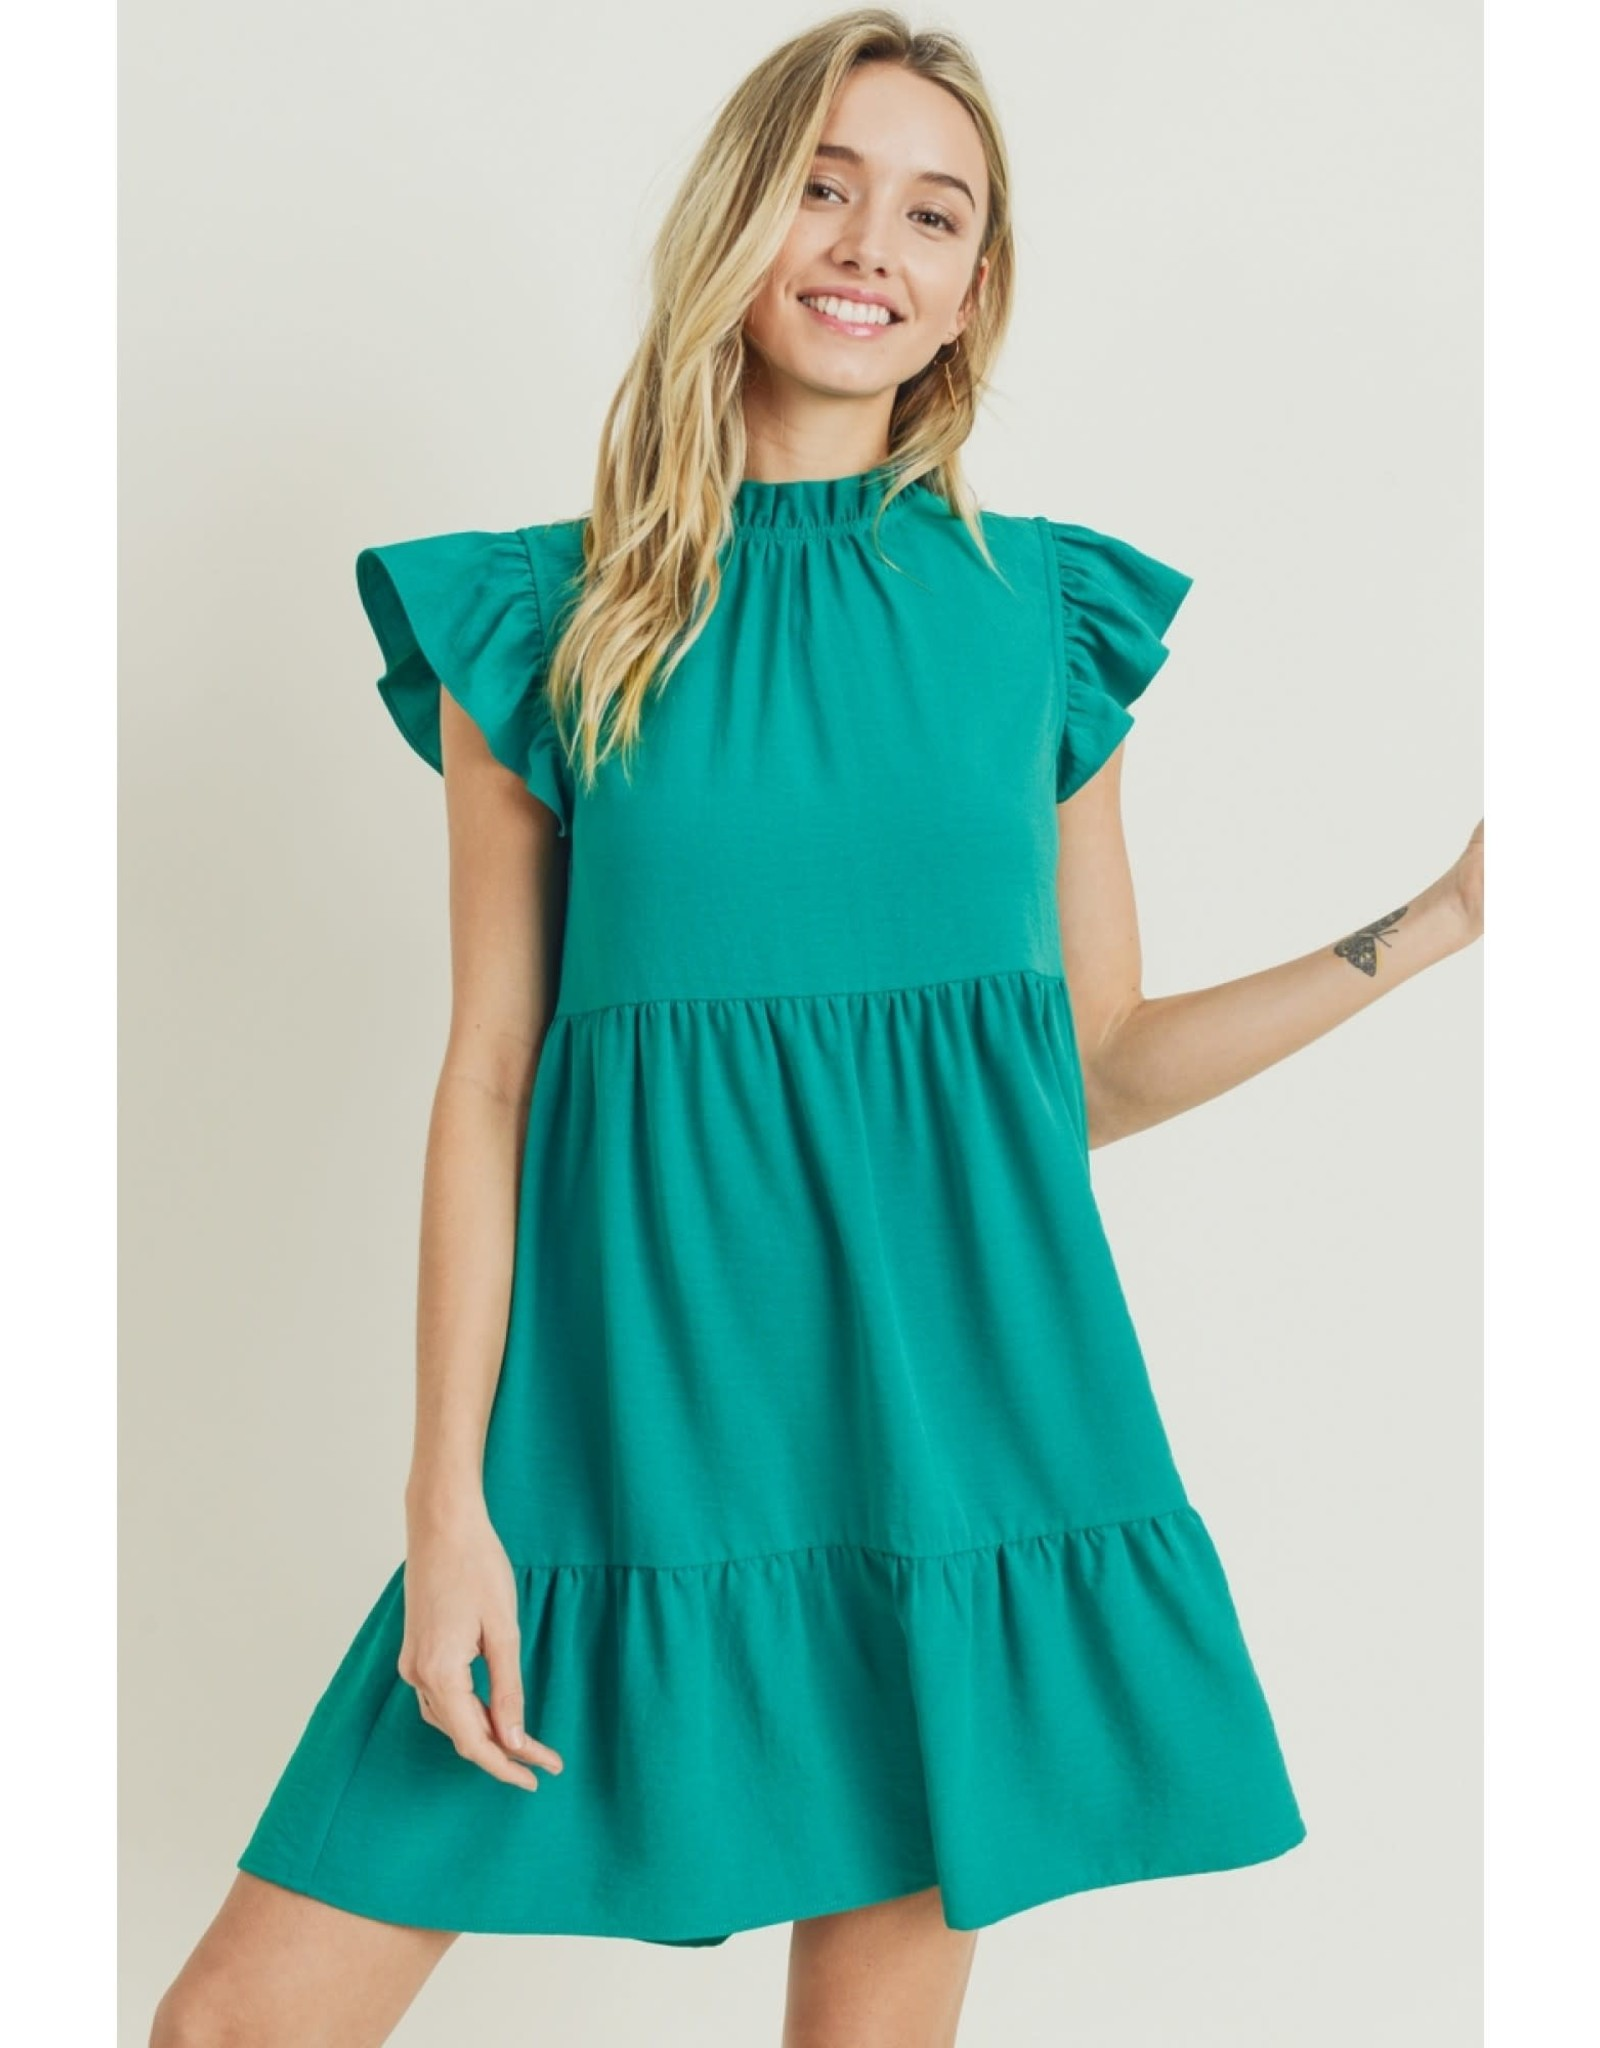 The Ritzy Gypsy JADE Ruffle Baby Doll Dress